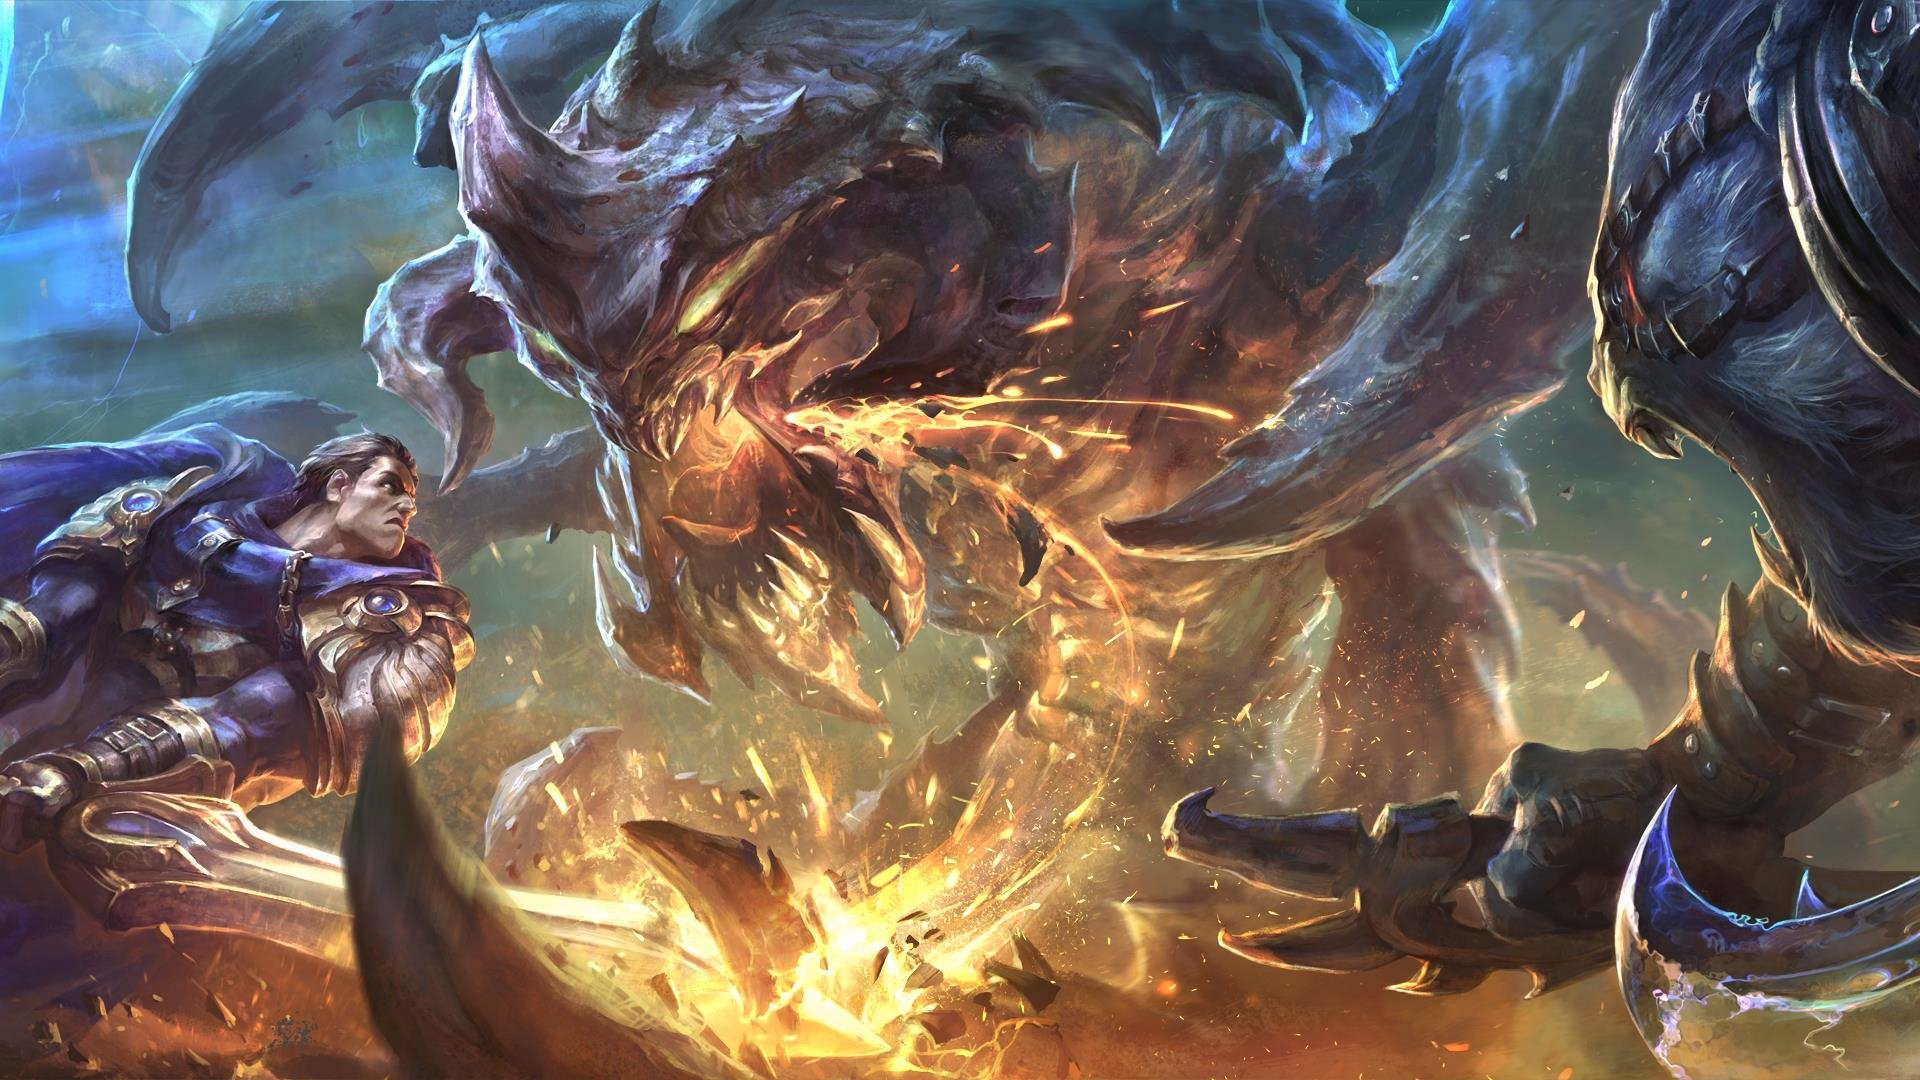 Invisible Iphone X Wallpaper League Of Legends Hd Wallpaper Background Image